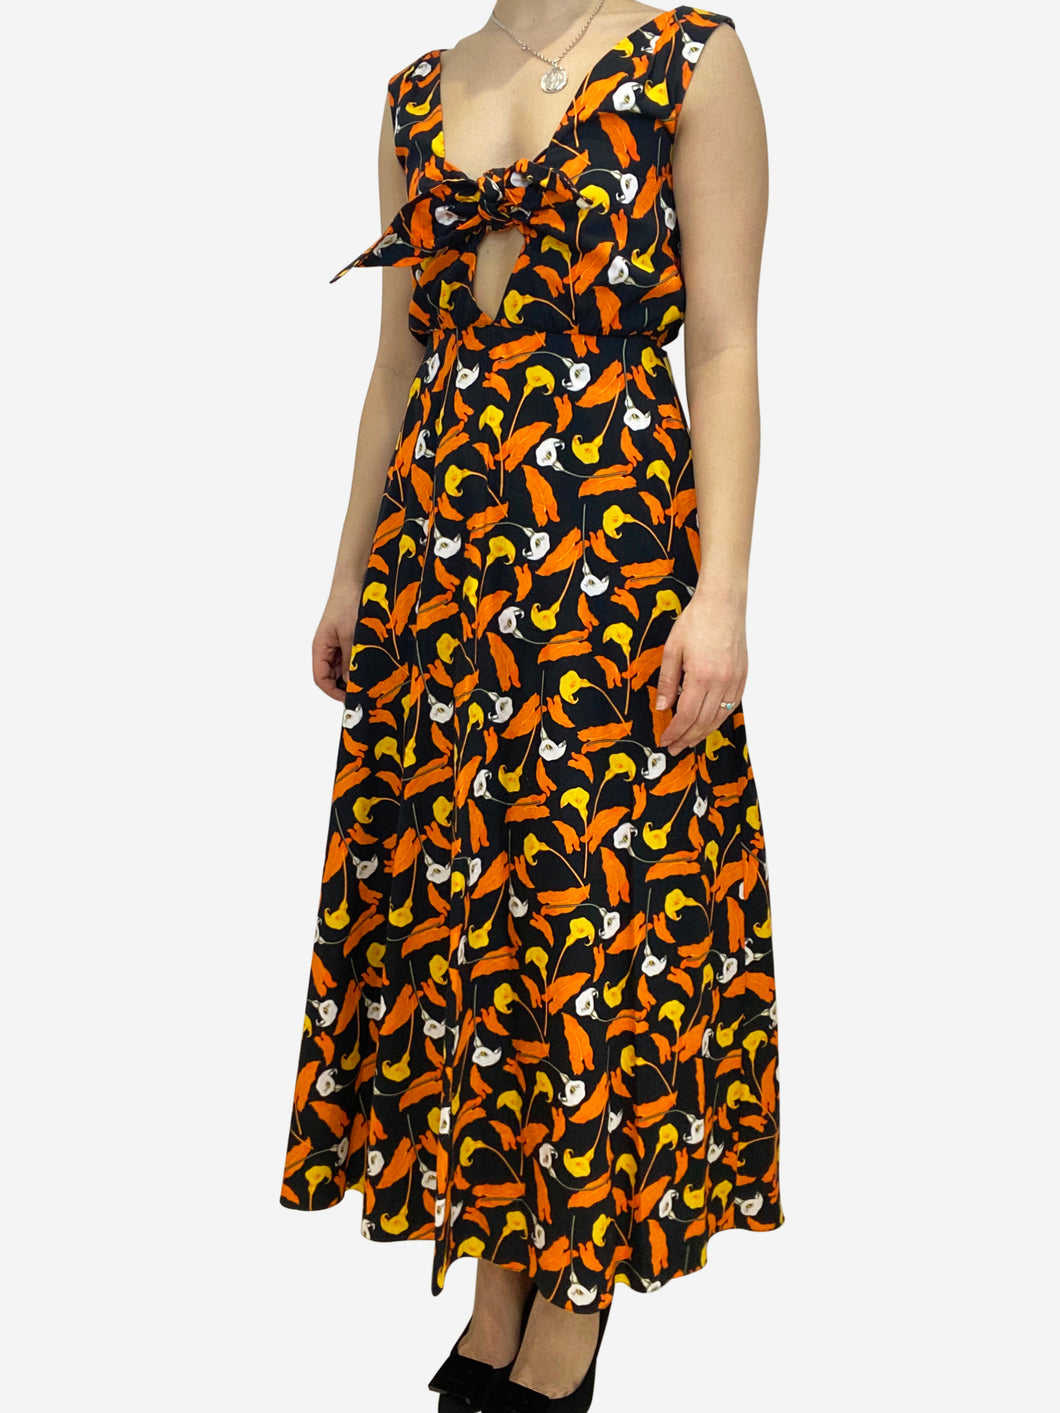 Black and orange tie front floral print dress- size UK 10